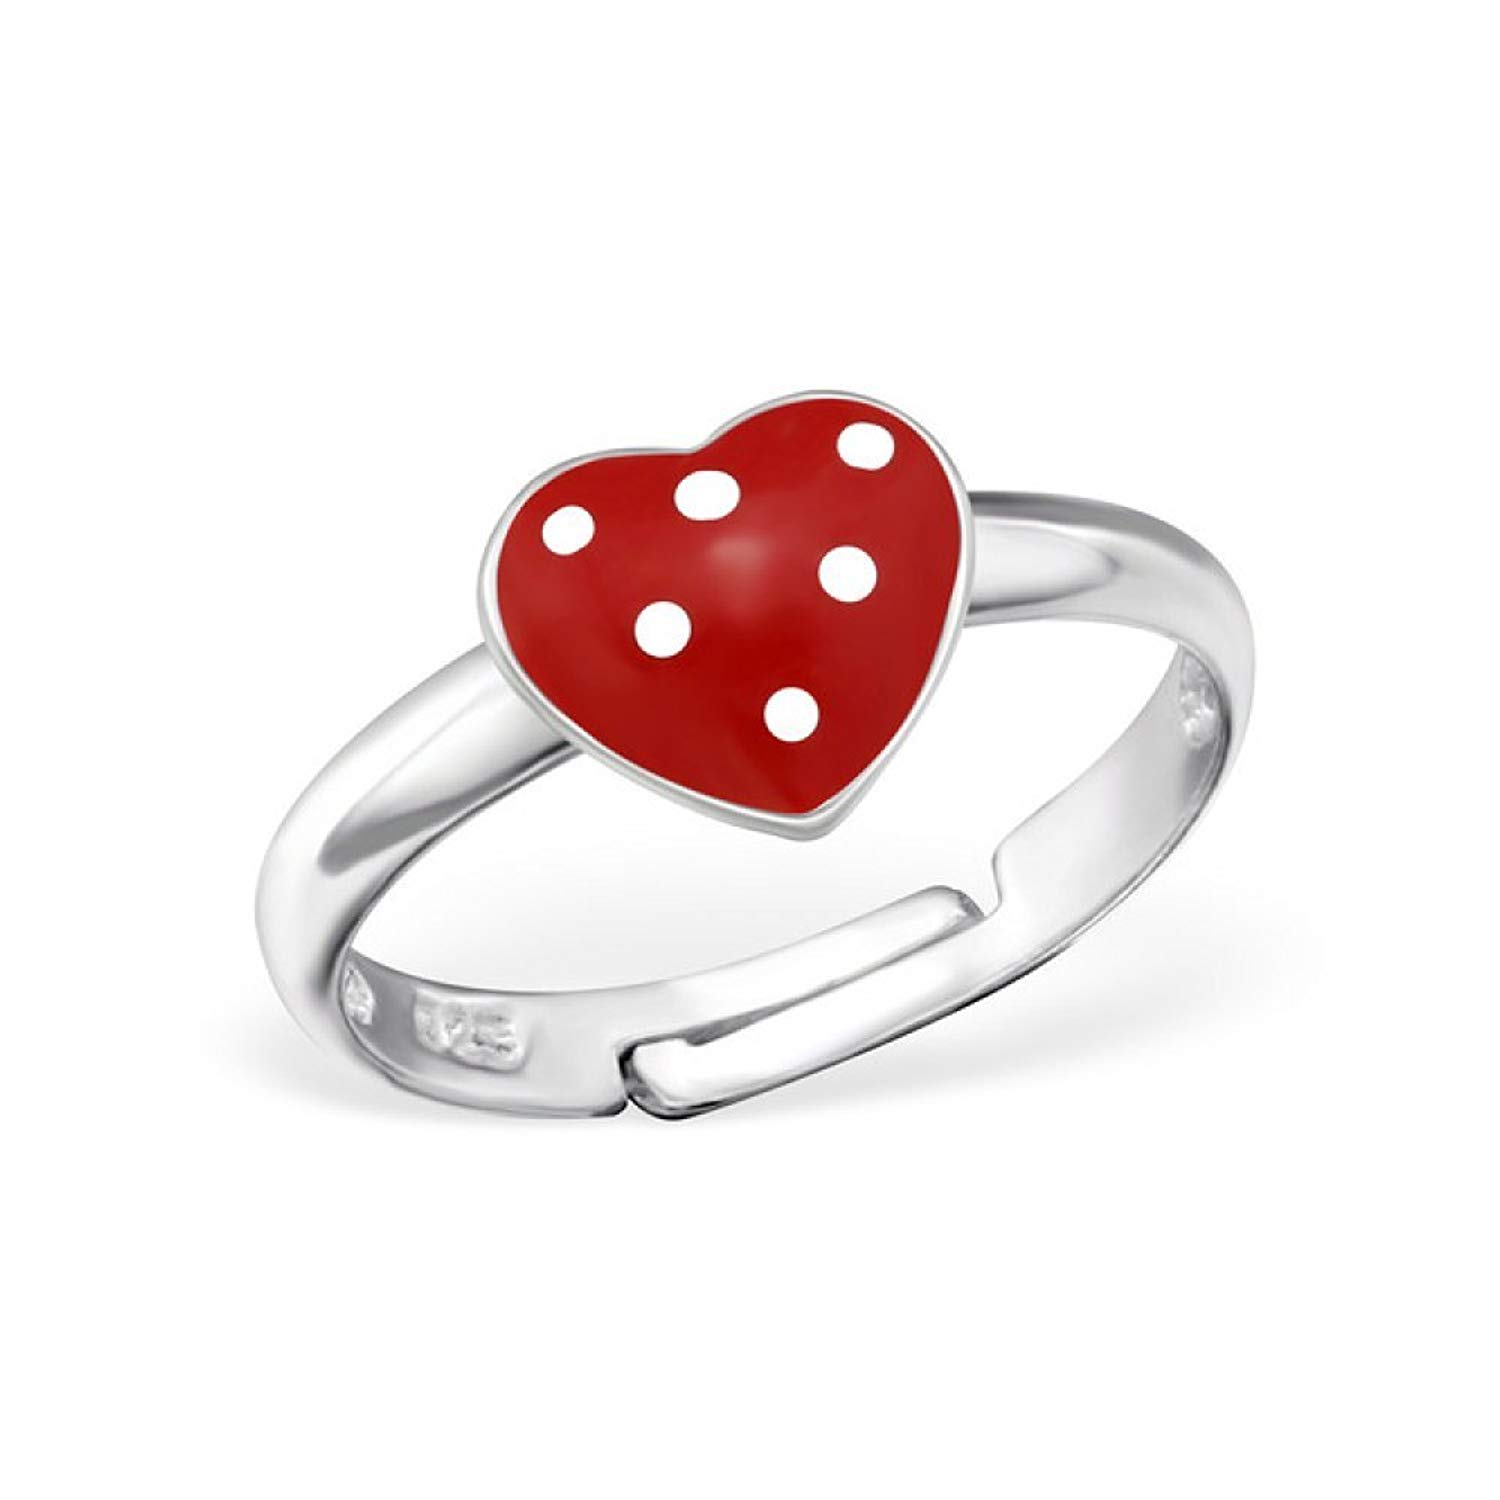 Liara Polished and Nickel Free Heart Jeweled Rings 925 Sterling Silver